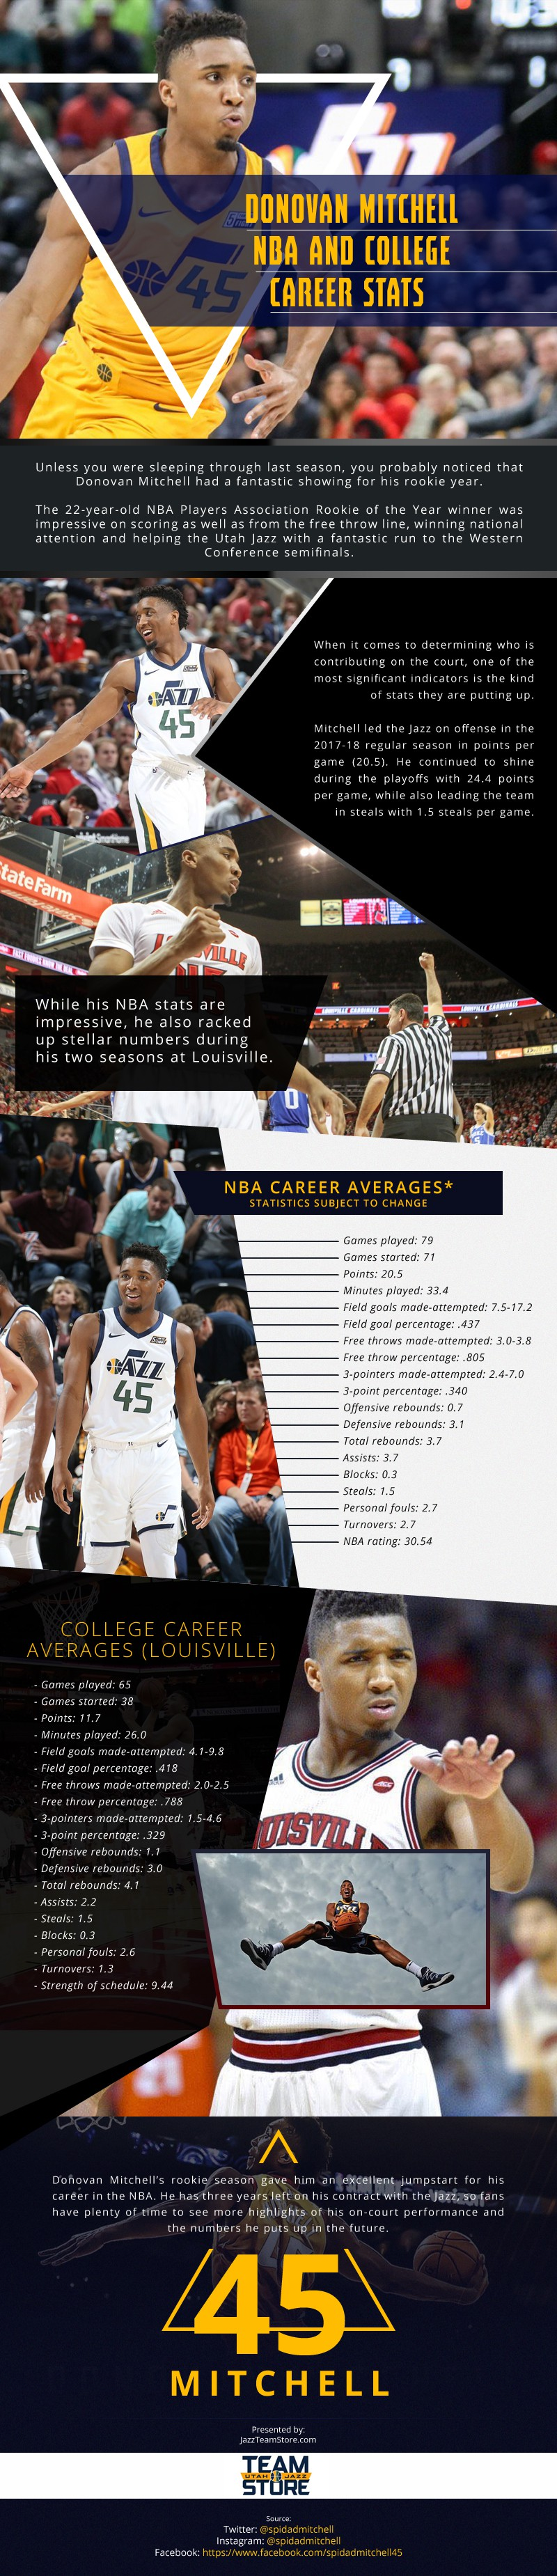 Donovan Mitchell NBA and College Career Stats [infographic]